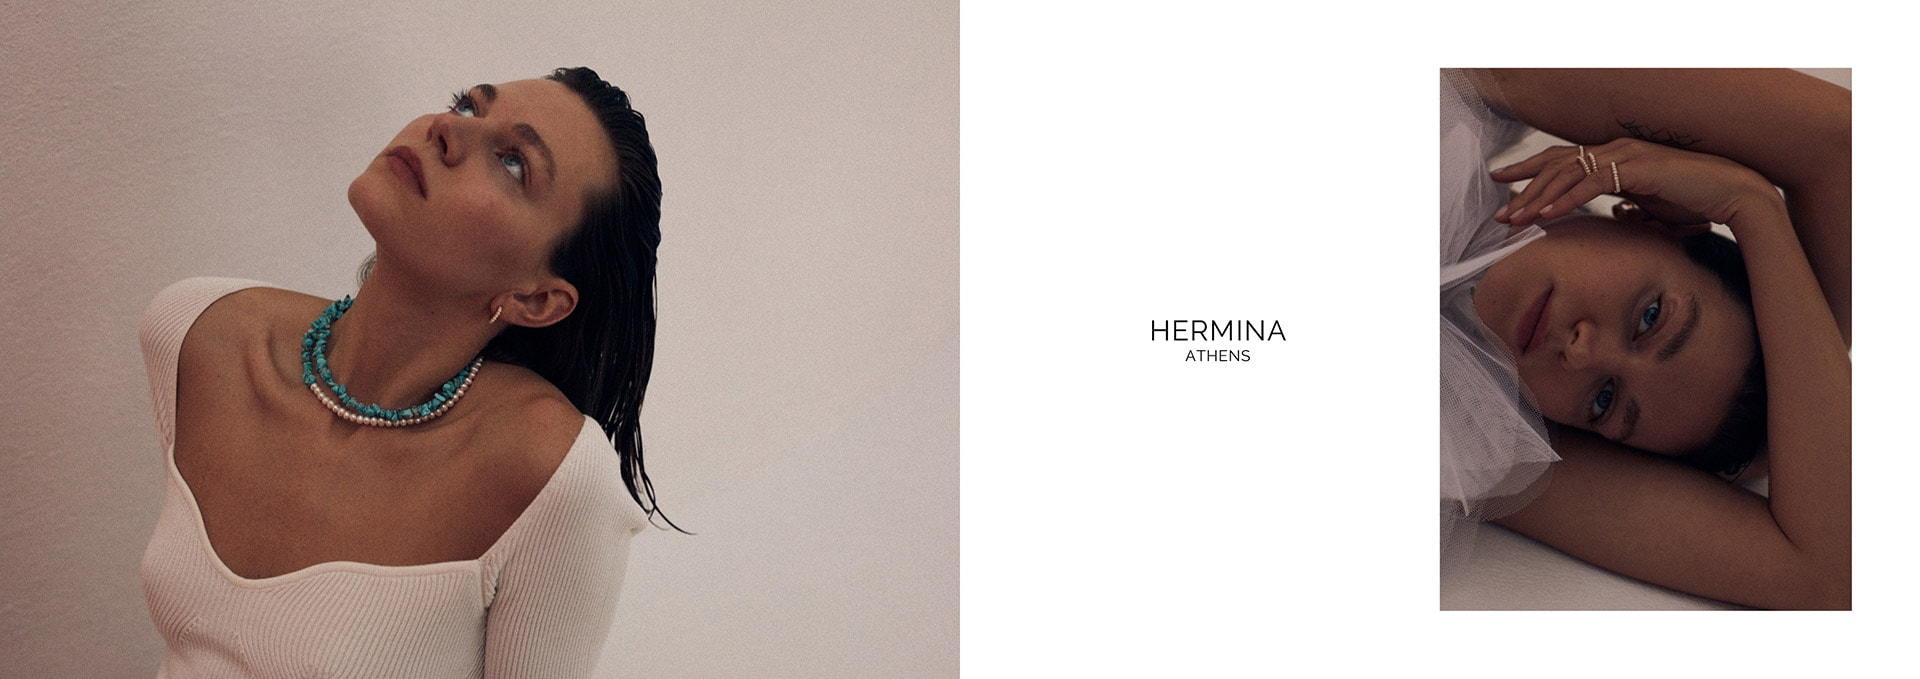 HERMINA ATHENS See Through Her